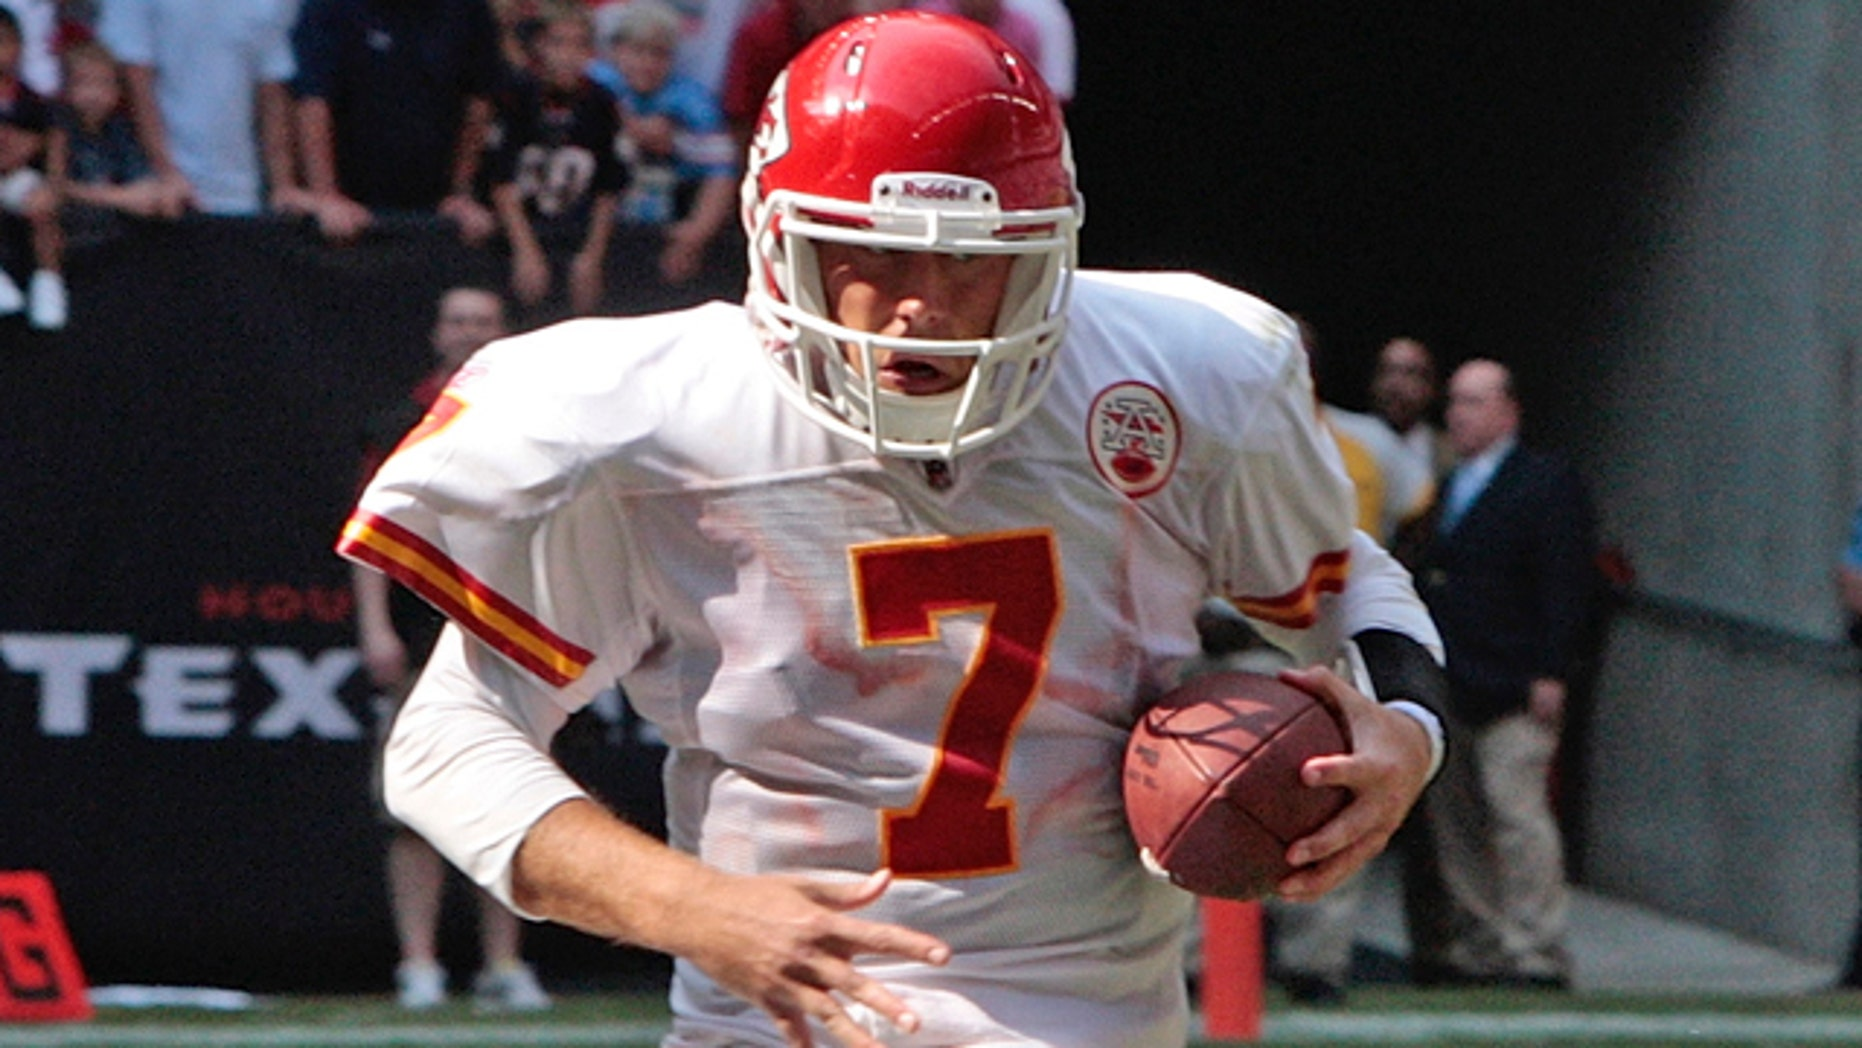 Oct. 17: Kansas City Chiefs quarterback Matt Cassel (7) is chased from the pocket on the final play of the football game at Reliant Stadium in Houston.